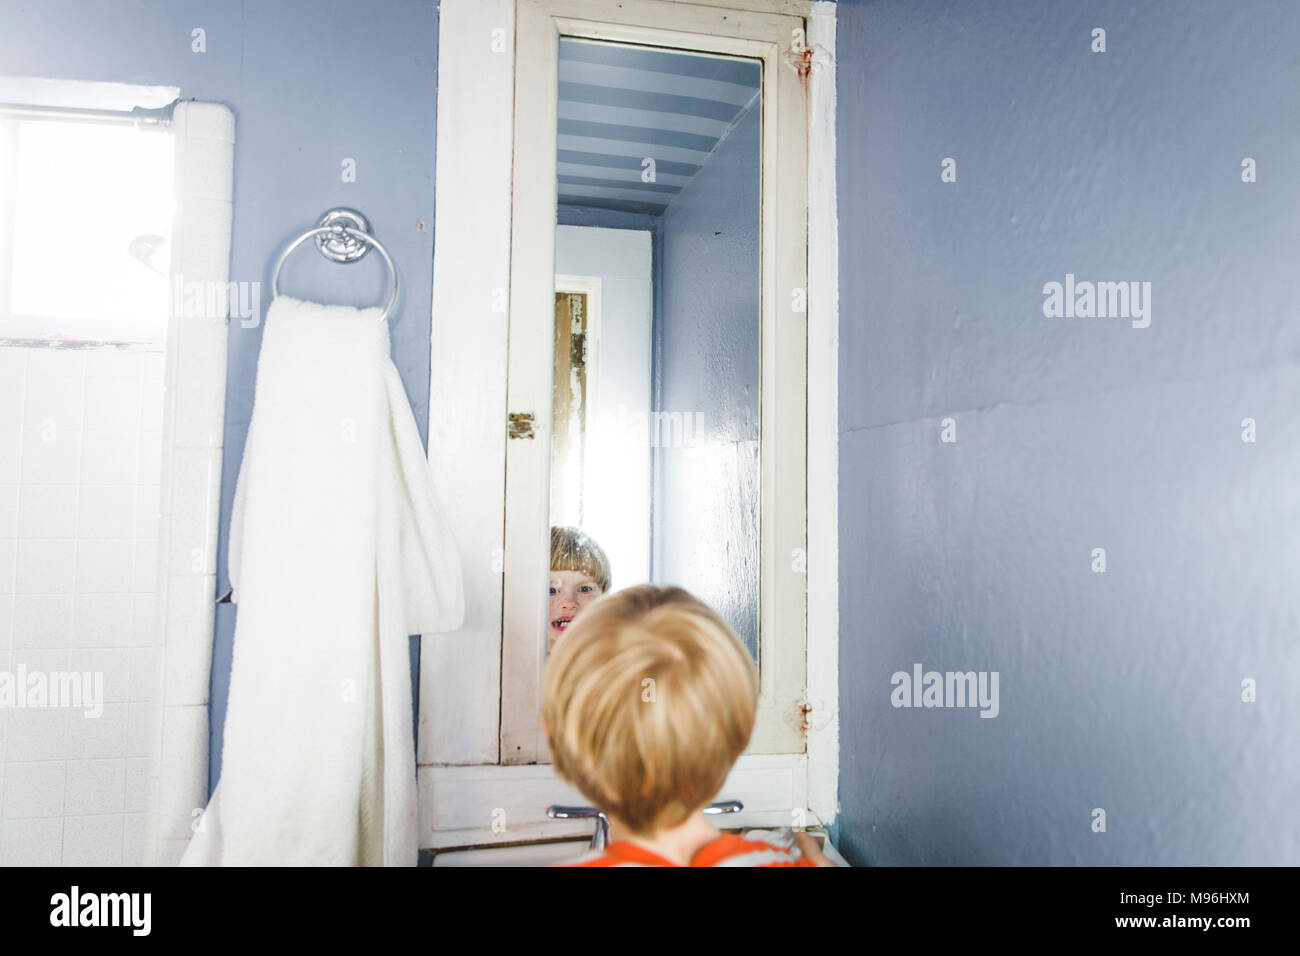 Boy smiling at himself in the mirror Stock Photo